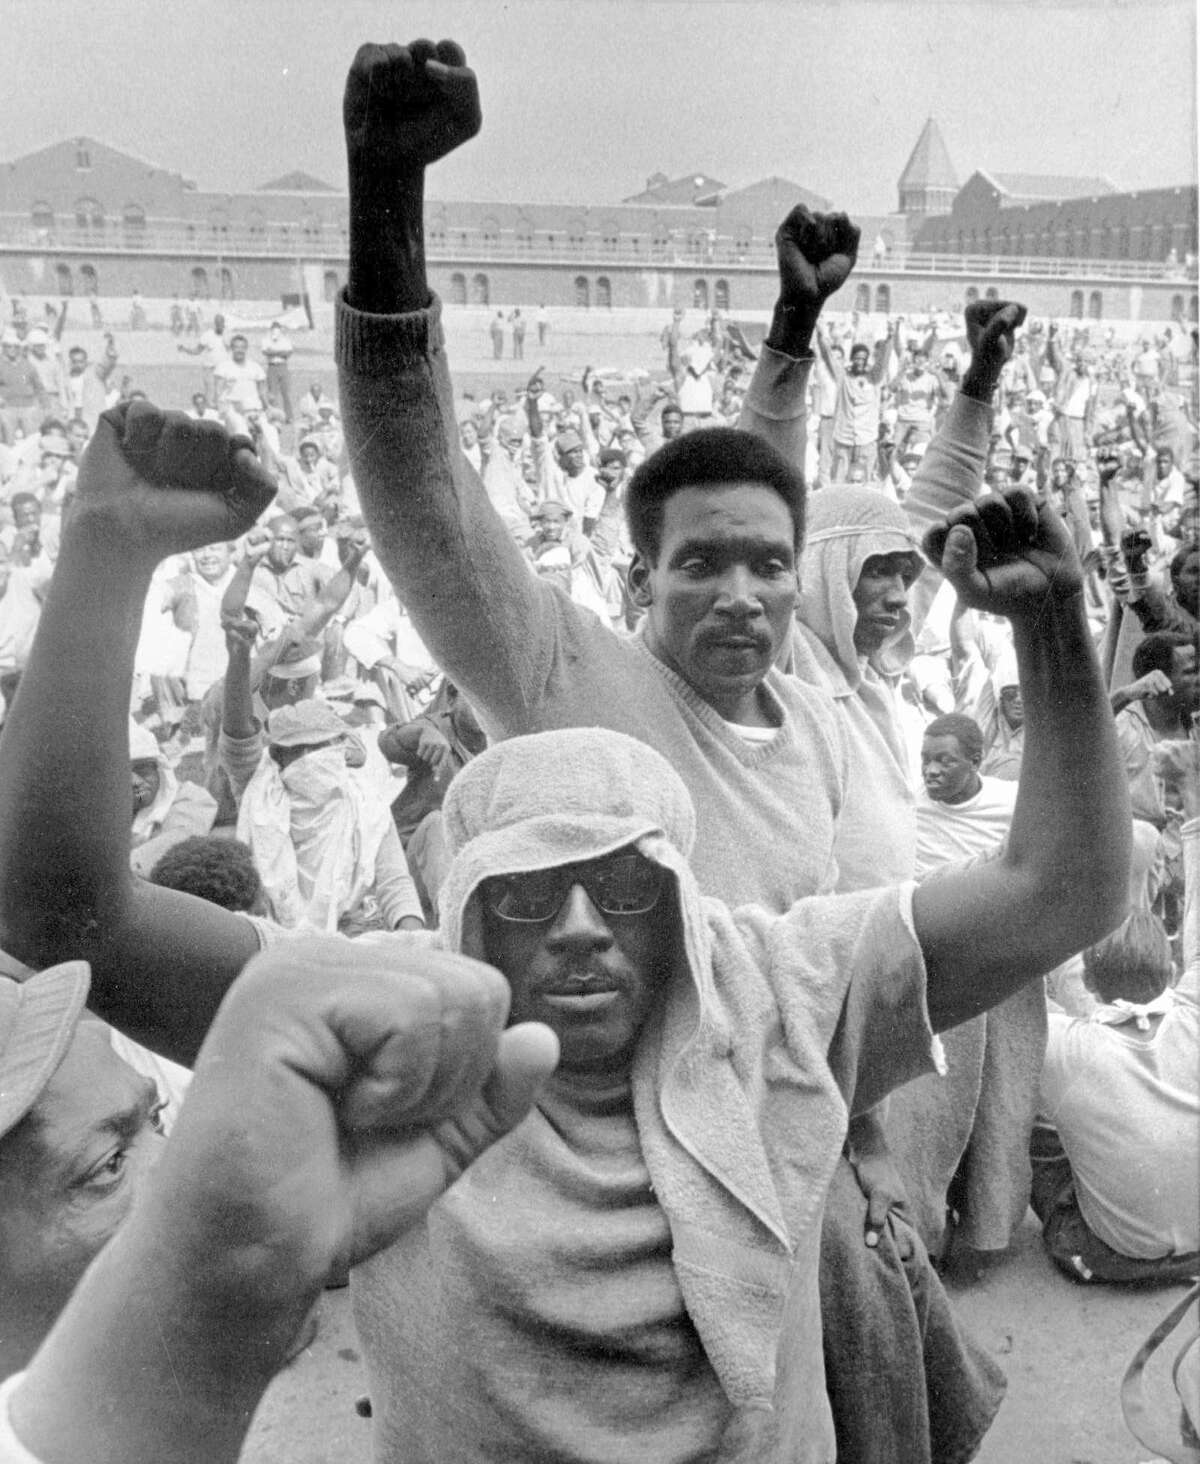 Inmates of Attica state prison in upstate New York raise their fists to show solidarity in their demands during a negotiation session with state prisons Commissioner Russell Oswald, in this Sept. 10, 1971, file photo. (AP Photo/Bob Schutz)